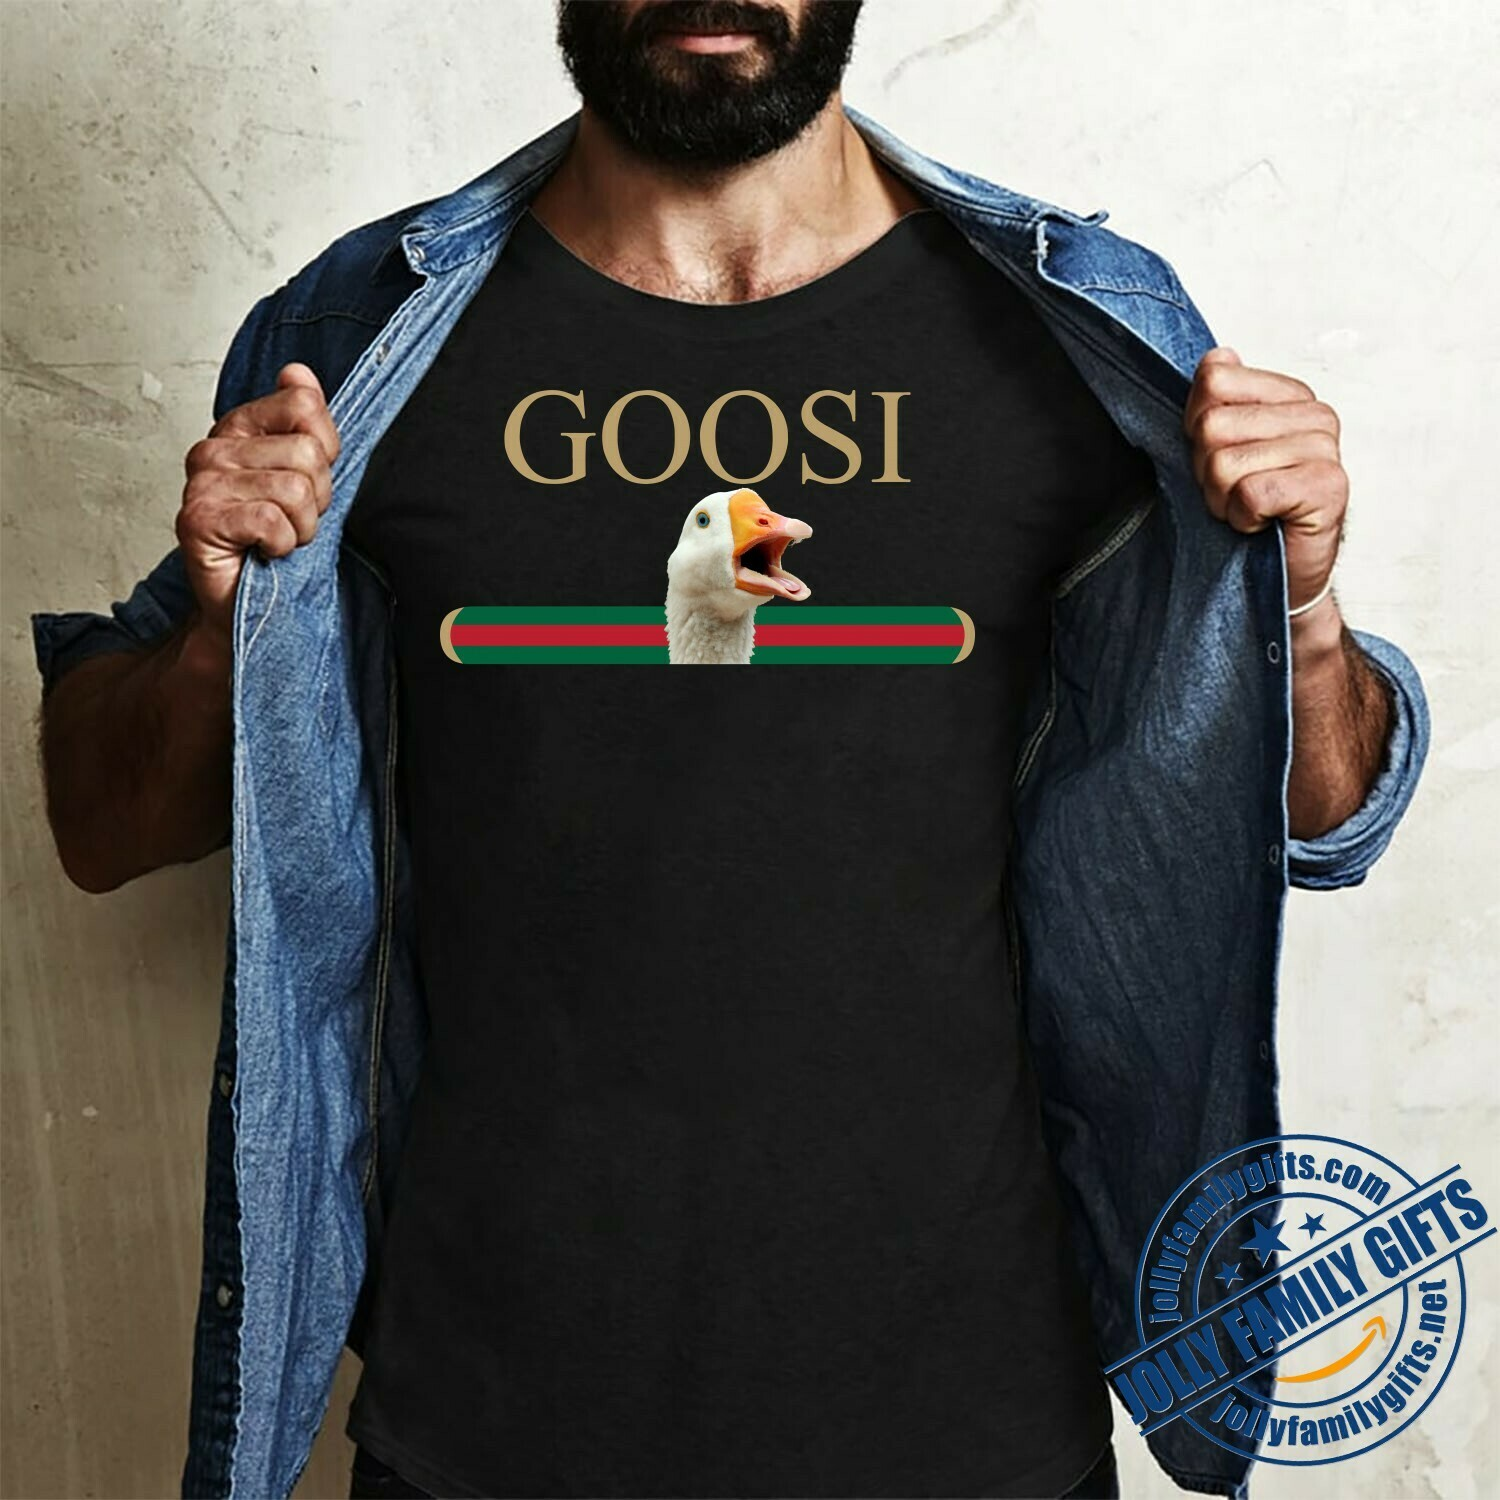 Goosi Funny Logo Gucci Clothing Brand Gucci Logo Gucci Design T-shirt Snake Vintage Fashion Luxury Shirts for Women Men  Unisex T-Shirt Hoodie Sweatshirt Sweater for Ladies Women Men Kids Youth Gifts